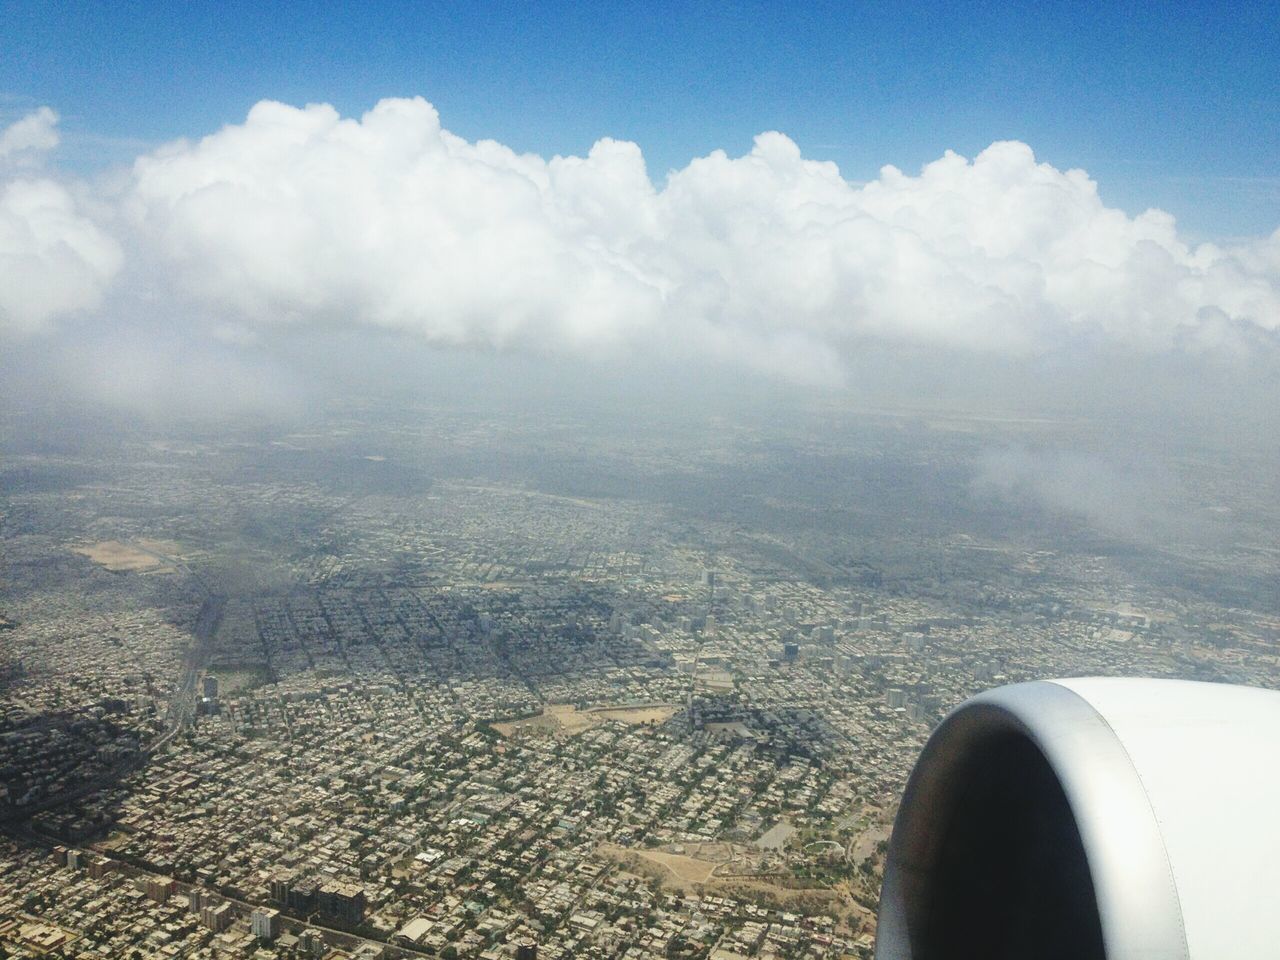 Traveling Home For The Holidays Karachi Aerial View Sky Cloud - Sky Airplane Beauty In Nature